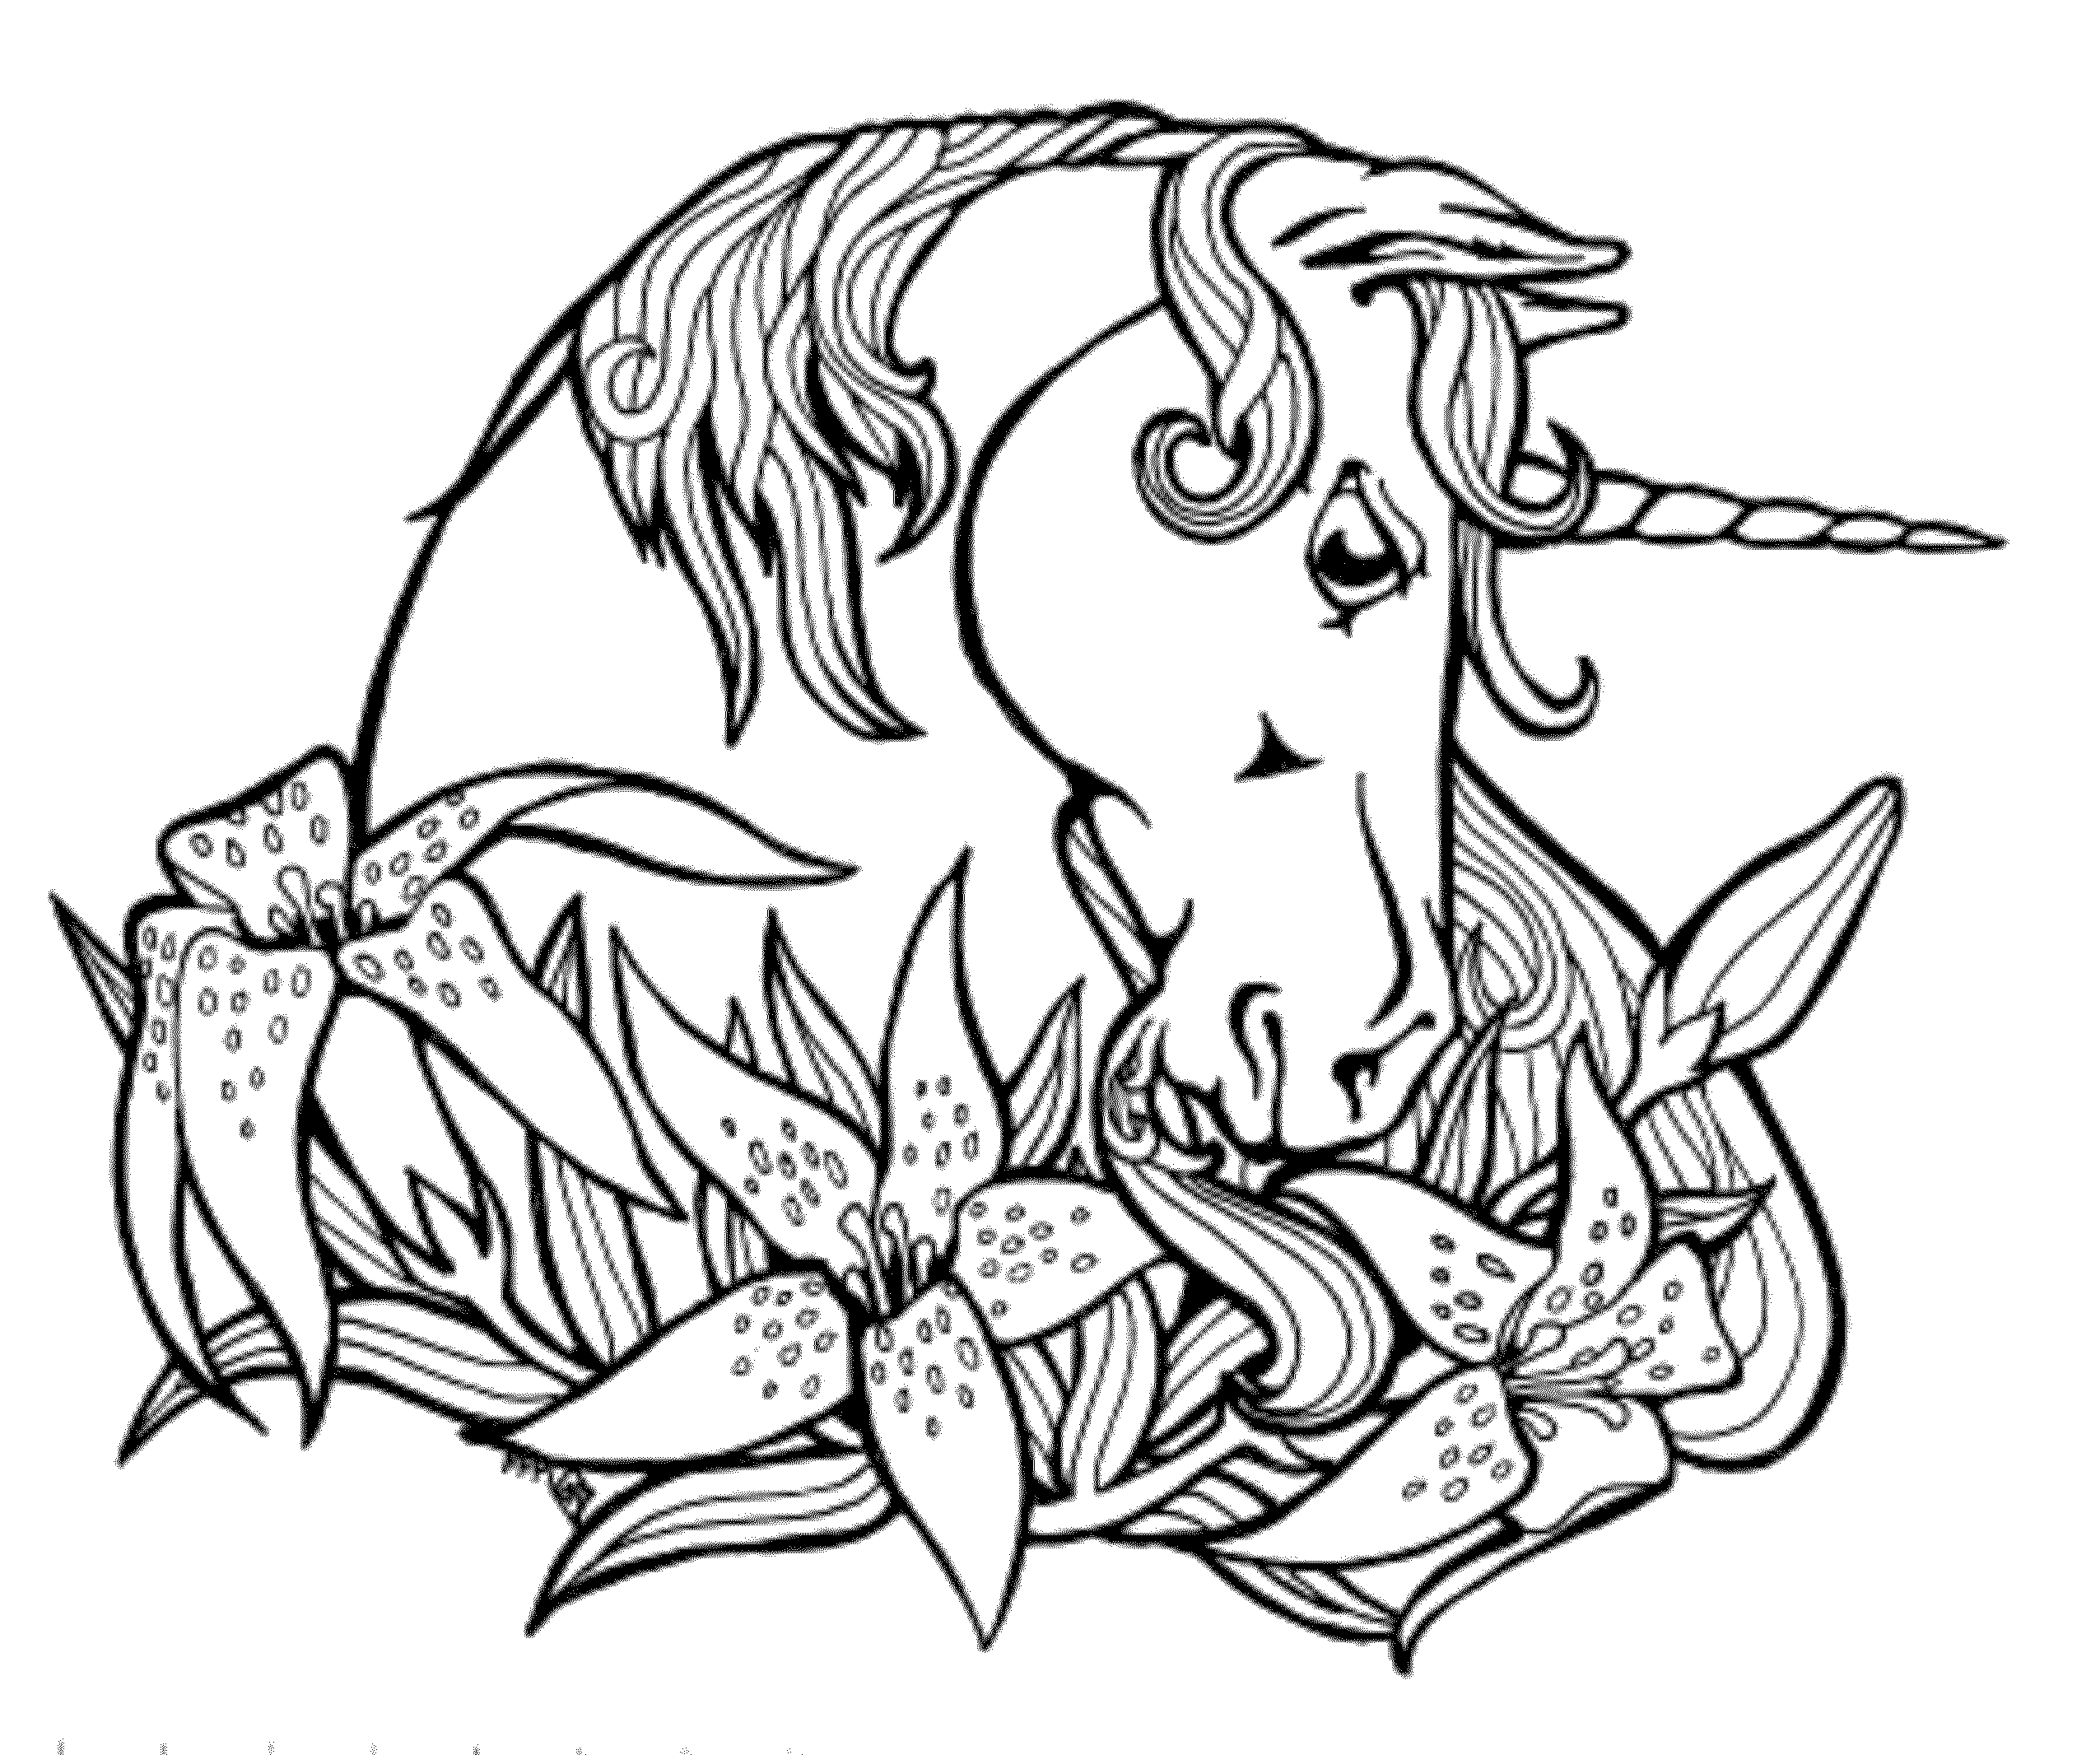 Unicorn Coloring Pages Online Free At Getdrawings Com Free